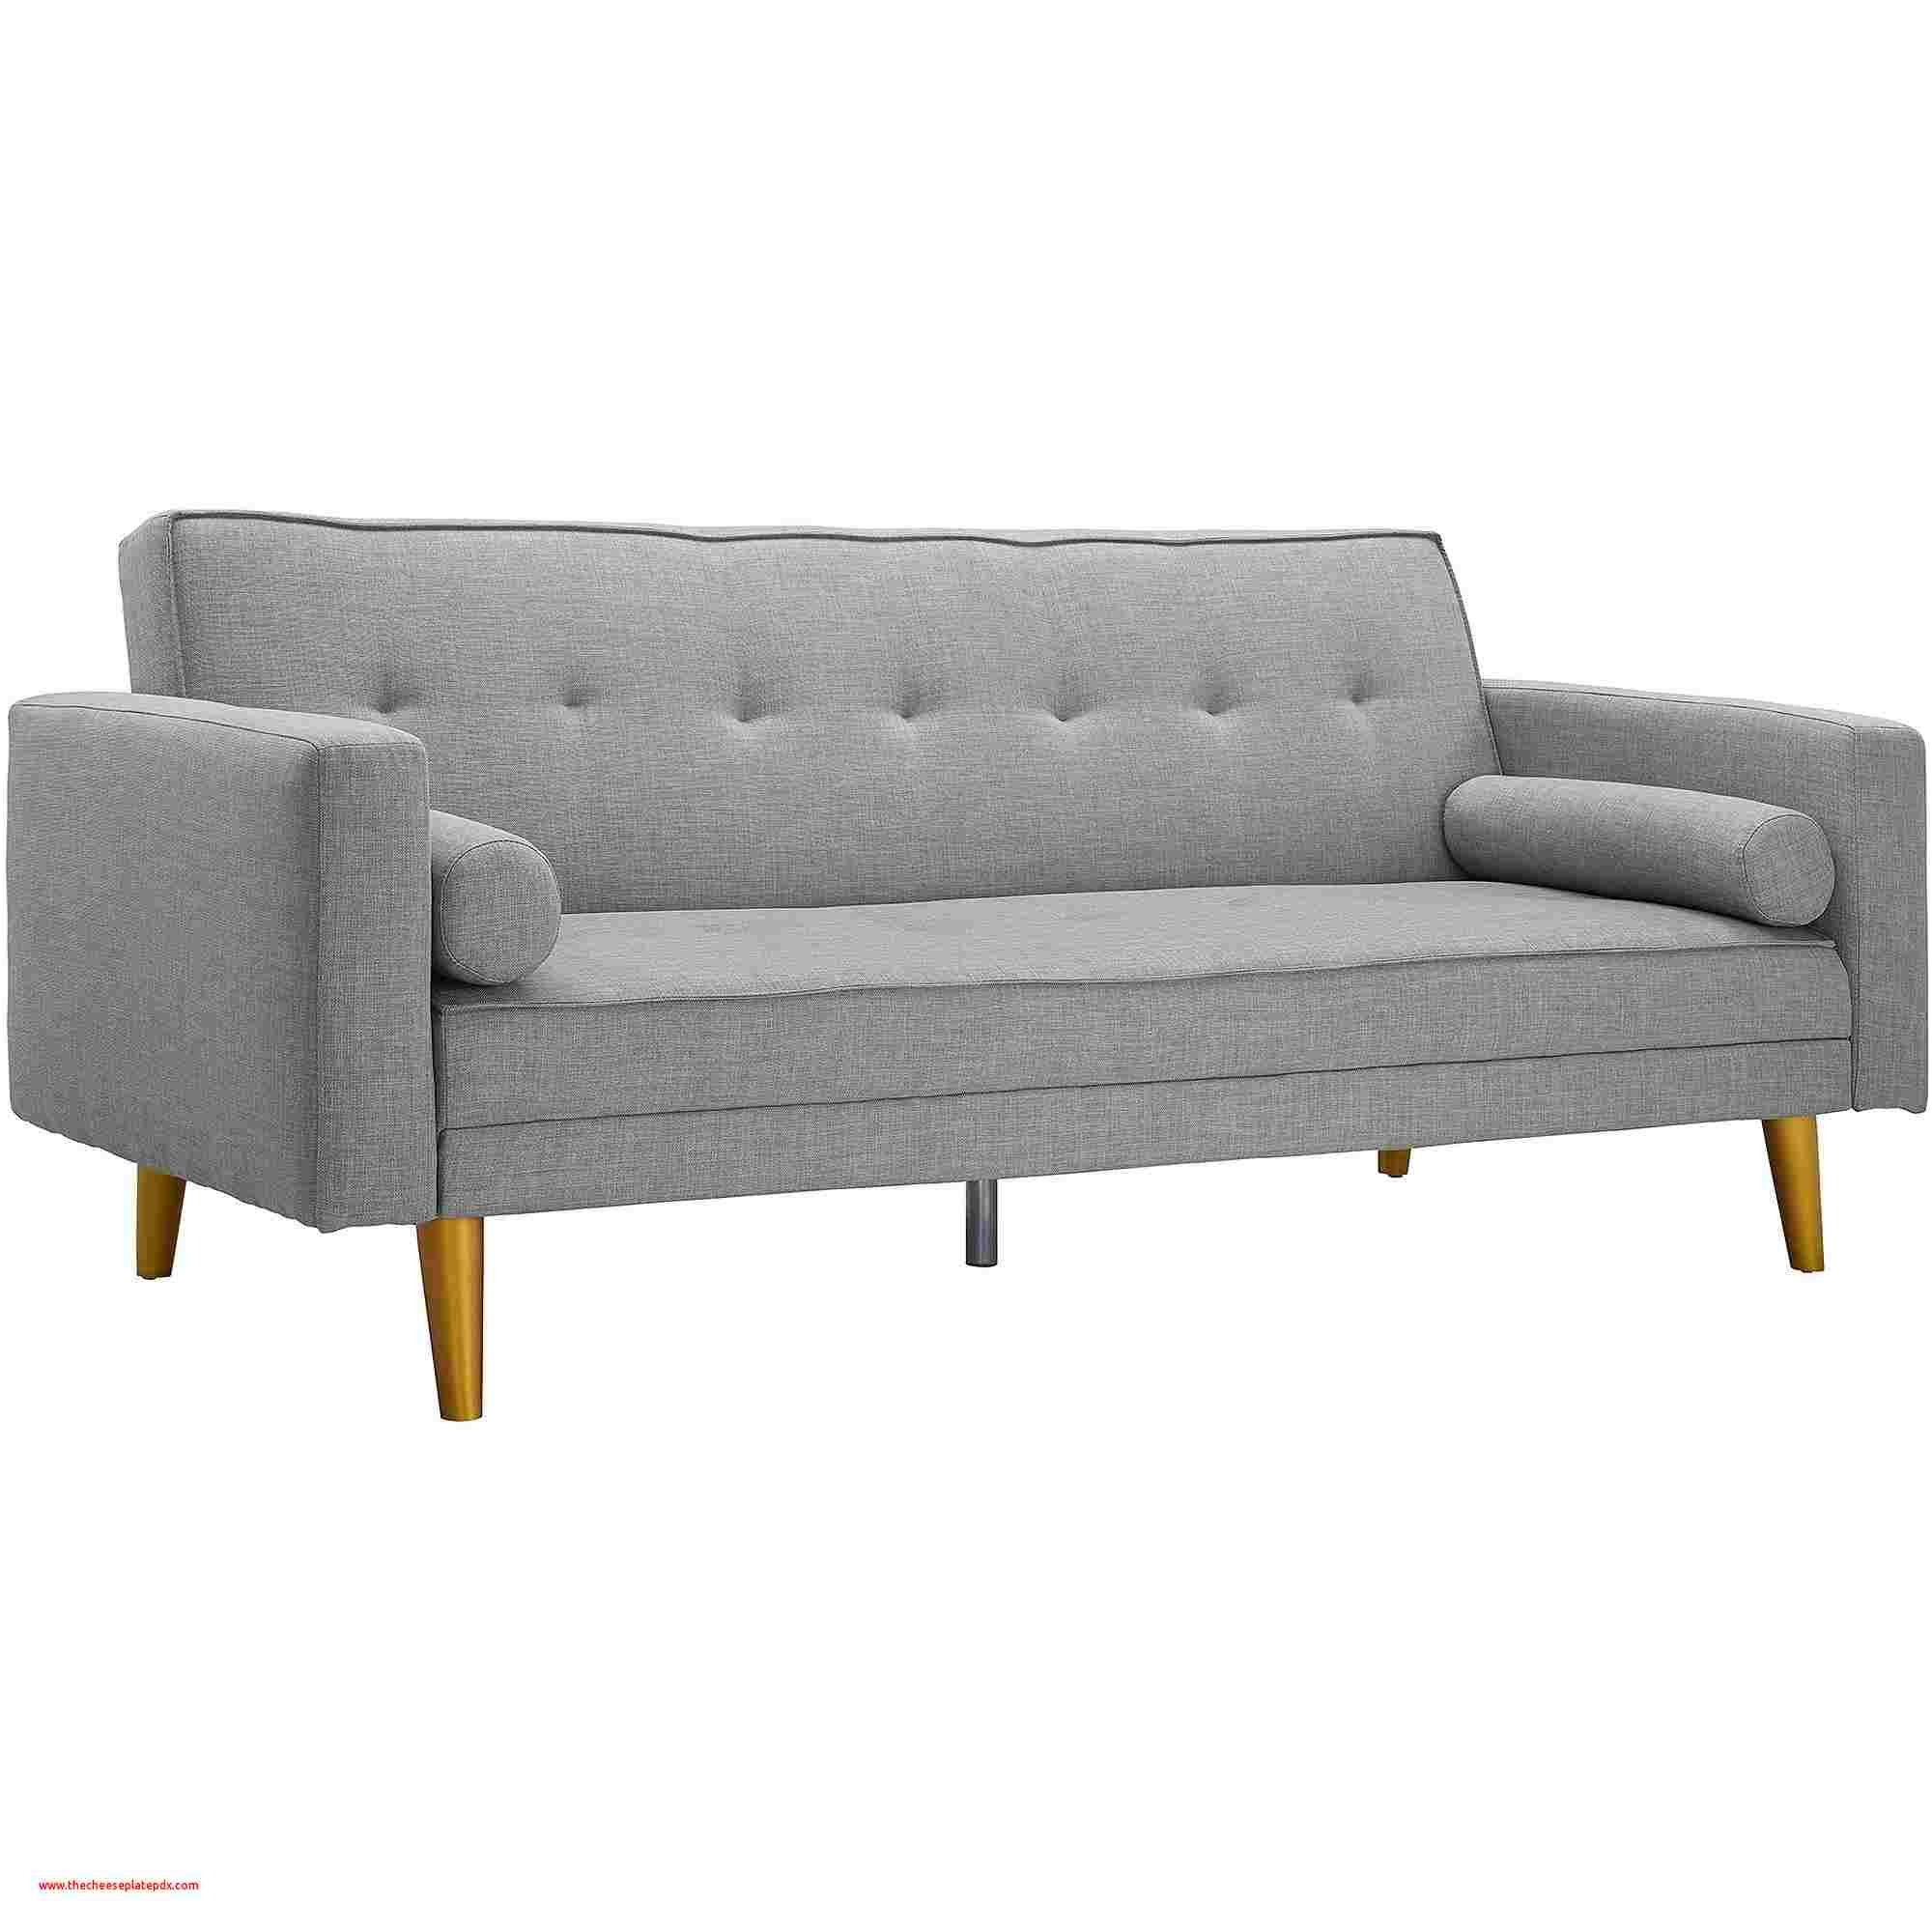 Bettsofa Chesterfield Prodigous Couch Auf Raten Couch Möbel Sofa Couch Sleeper Sofa